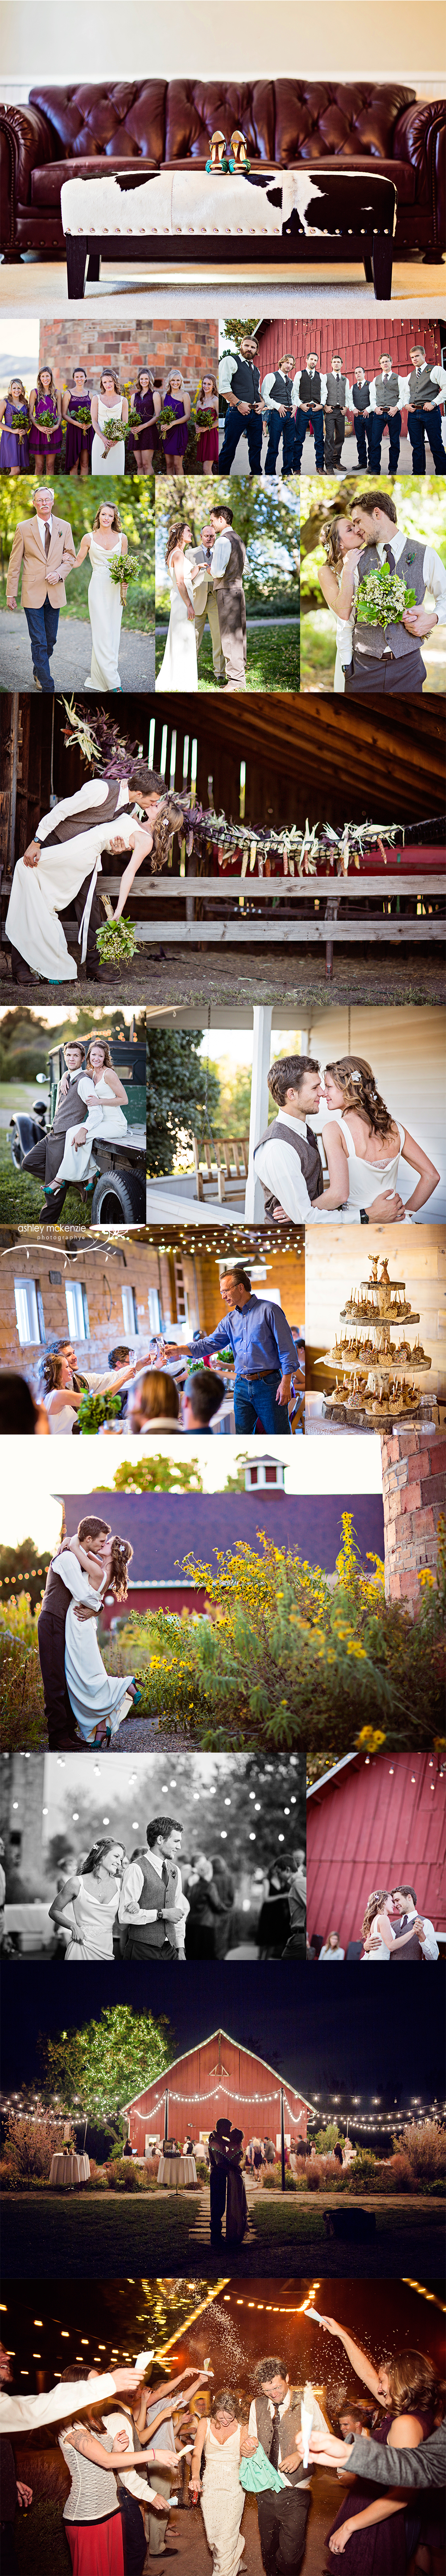 Wedding Photography by Ashley McKenzie Photography in Littleton, CO